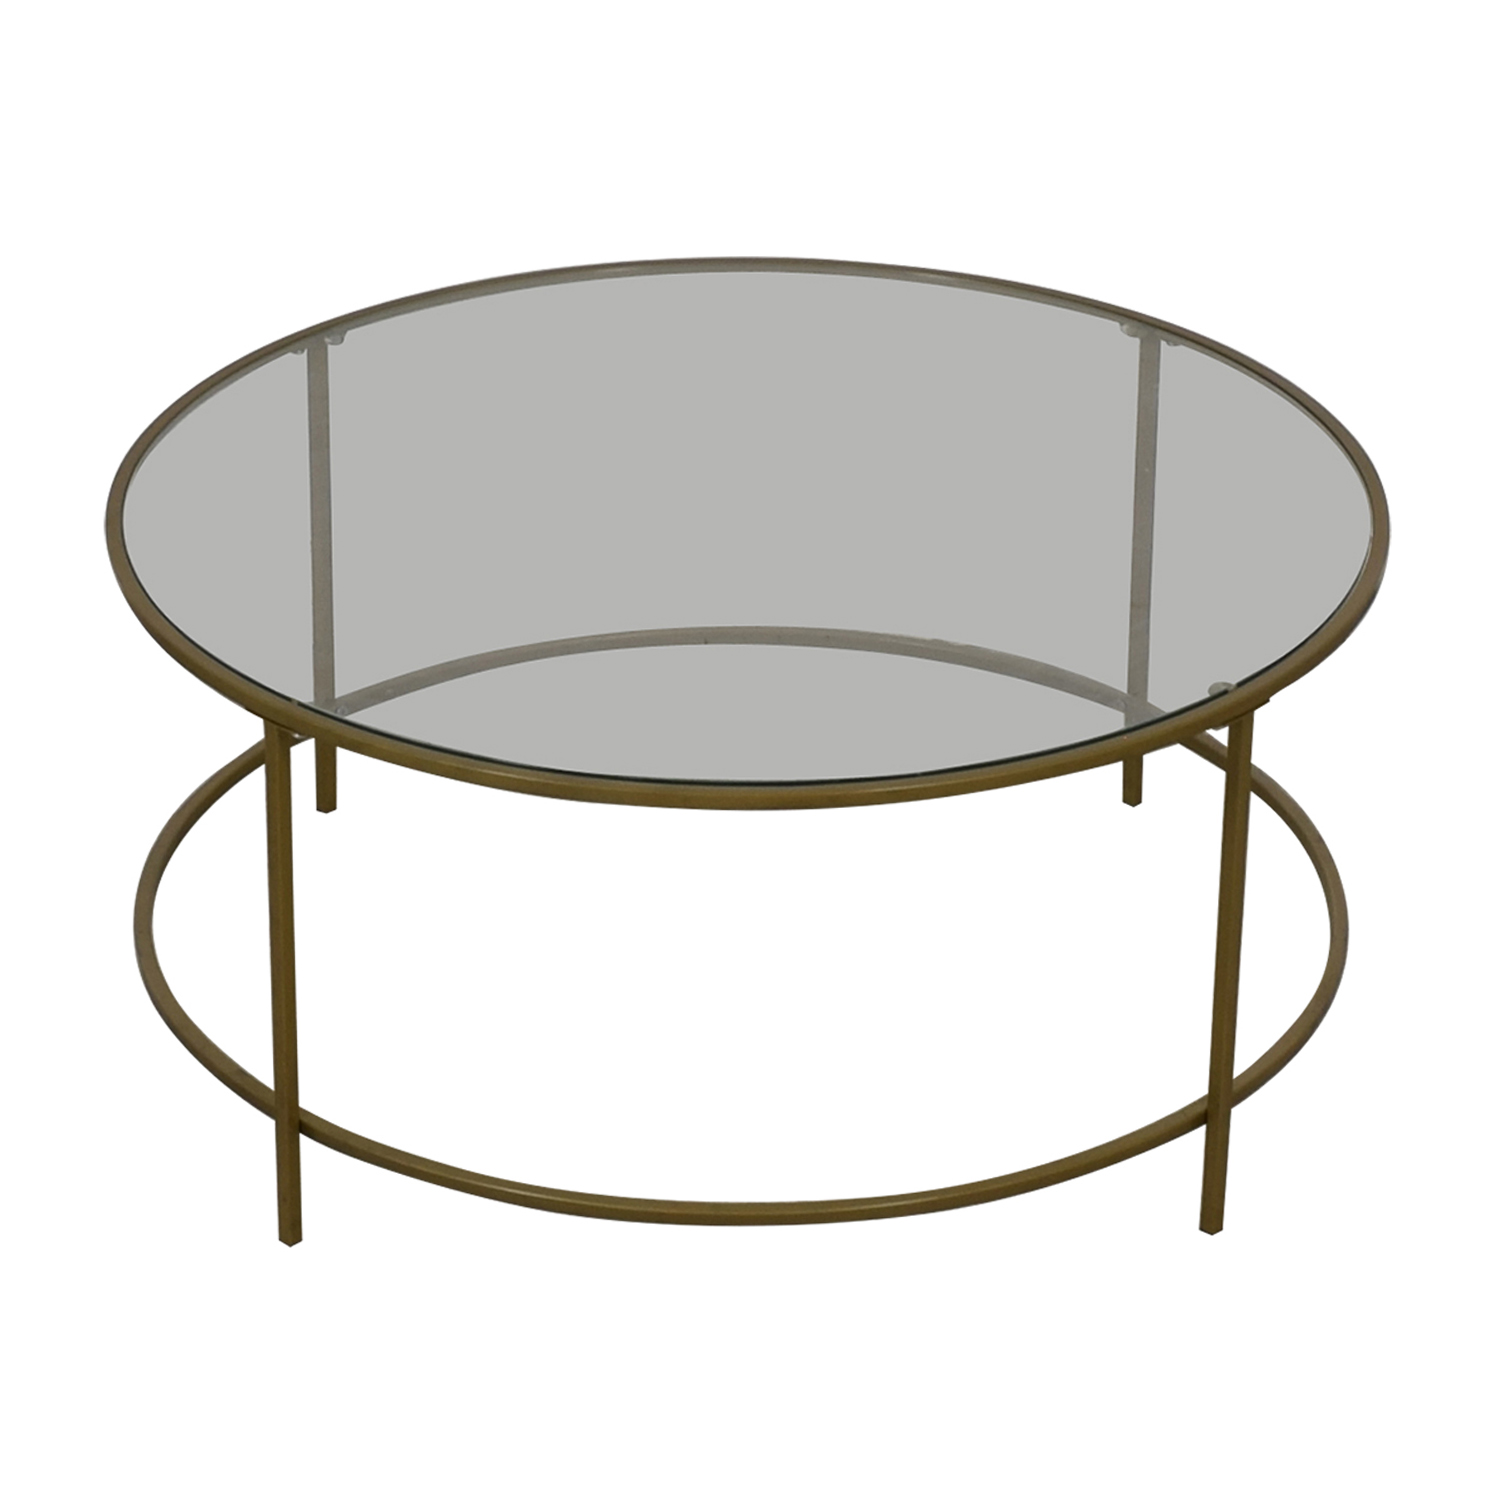 Cool 70 Off Wayfair Wayfair Glass And Brass Coffee Table Tables Uwap Interior Chair Design Uwaporg